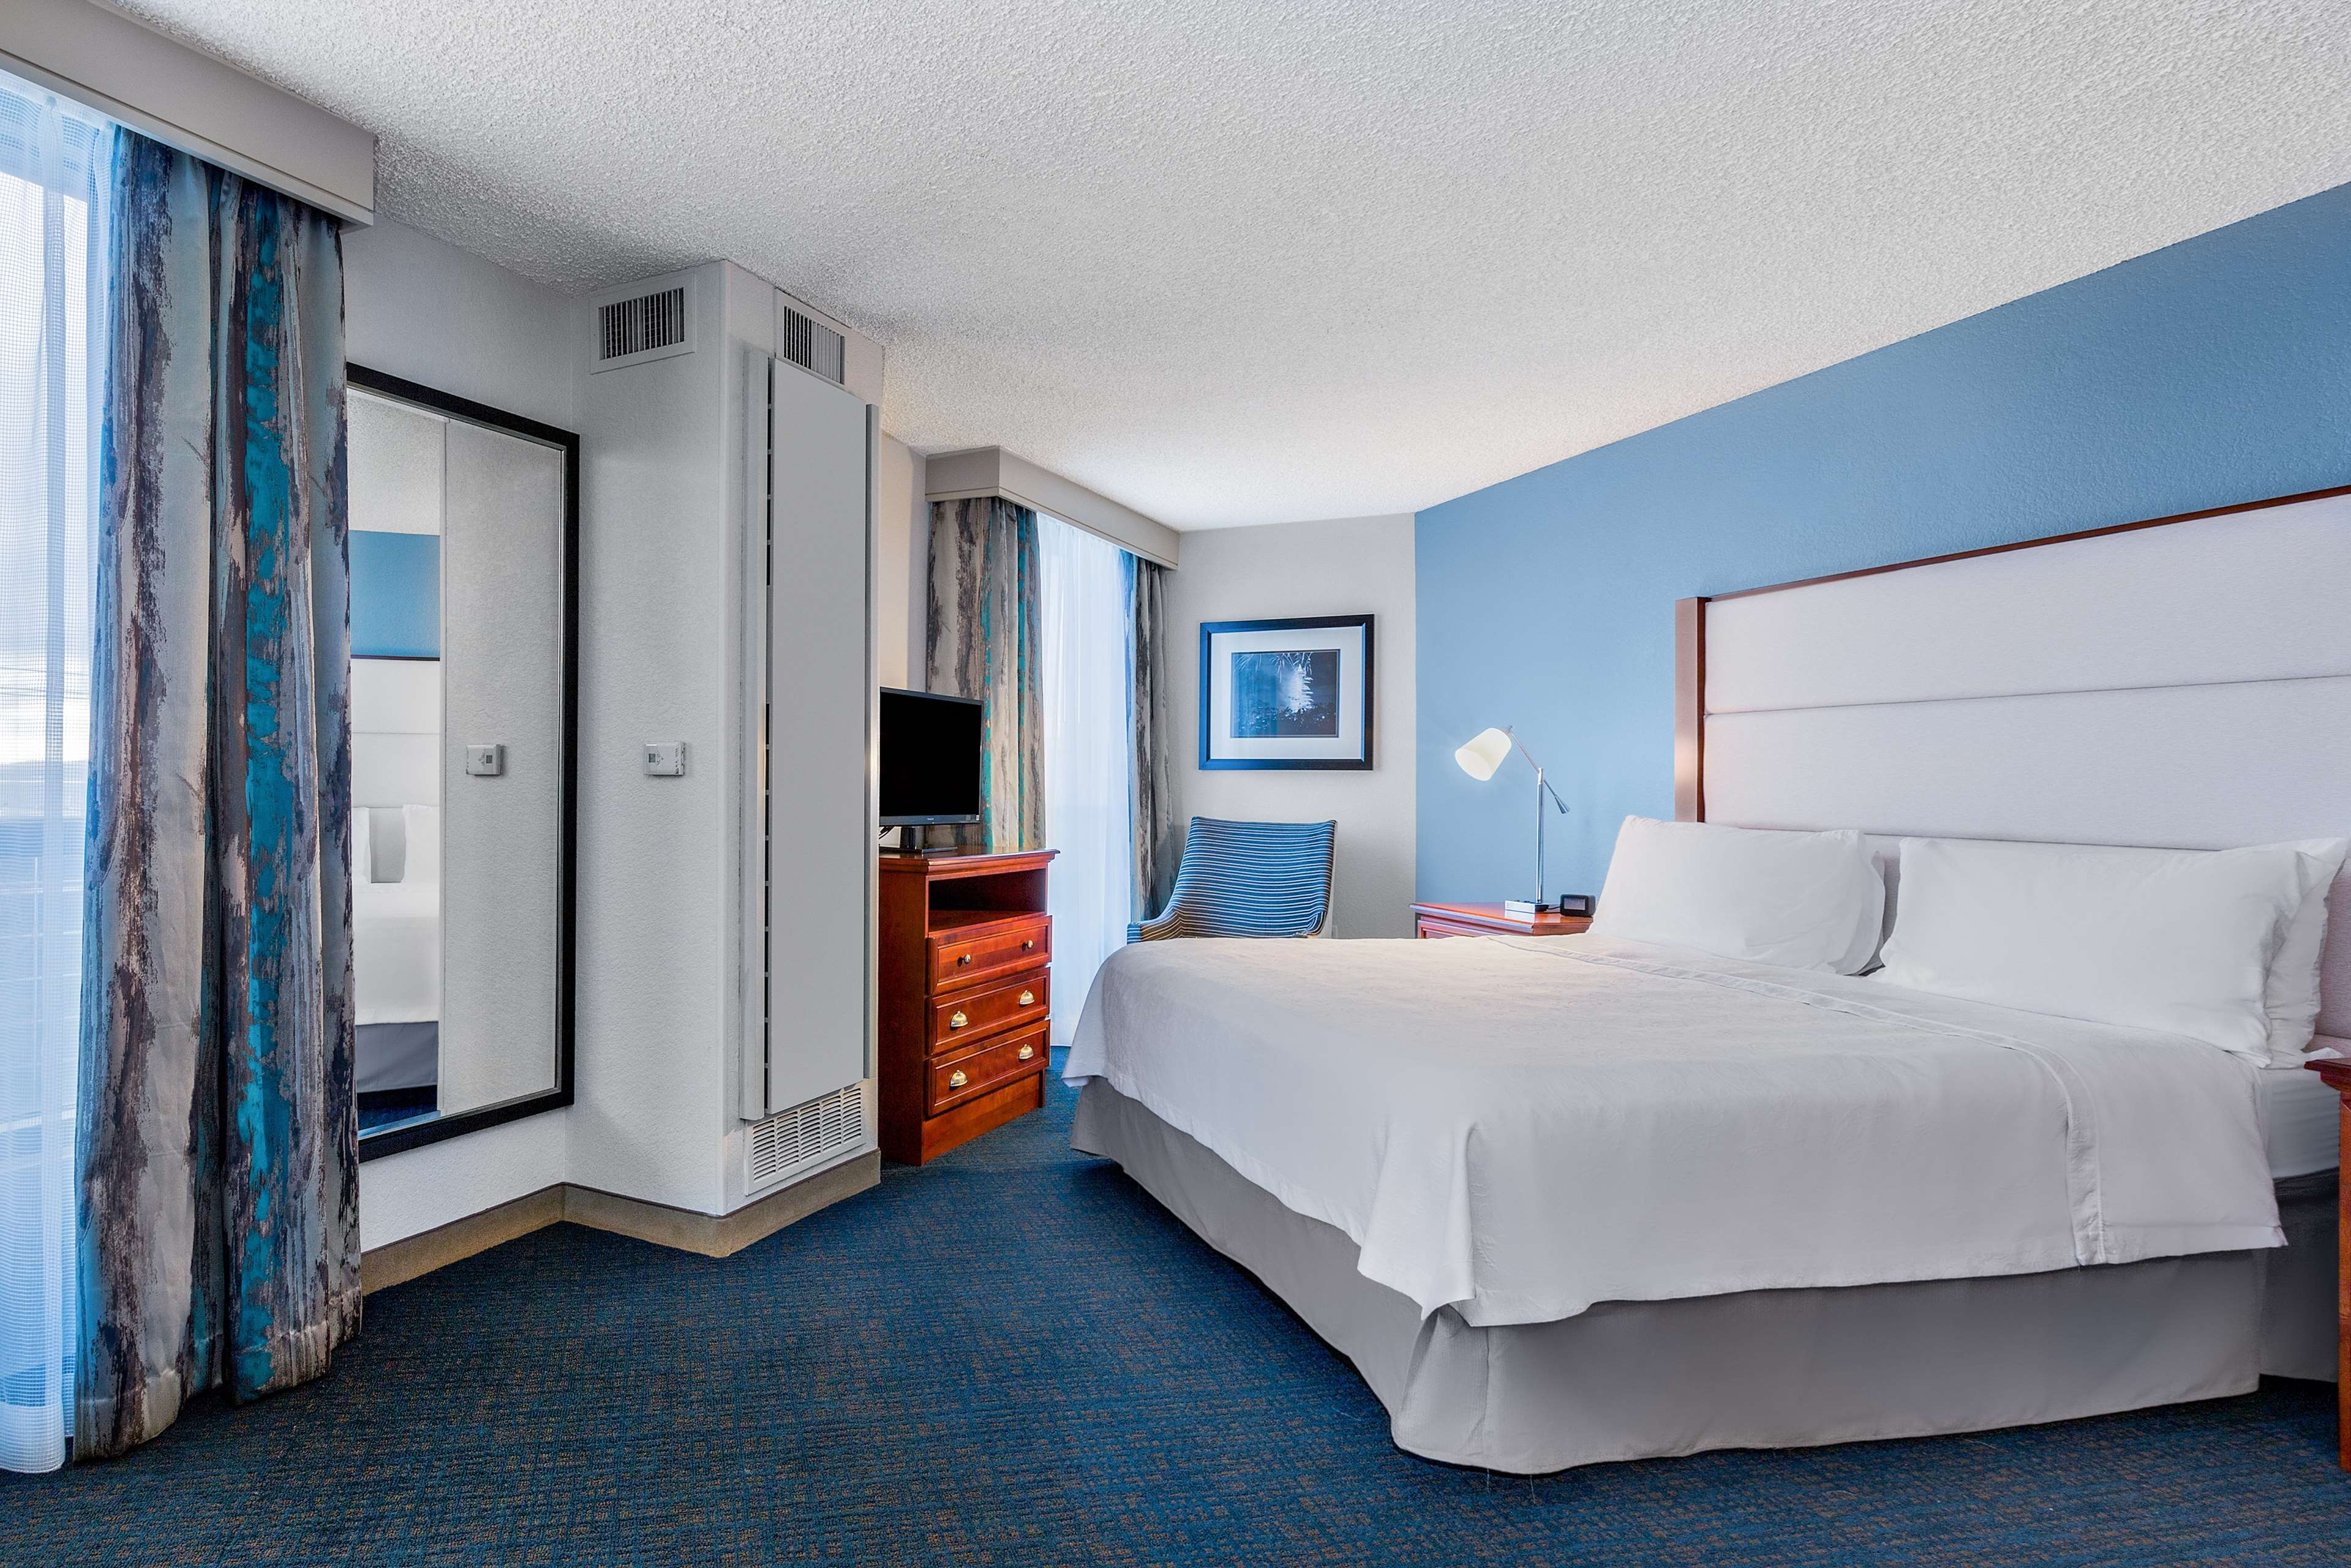 Homewood Suites by Hilton Seattle Downtown image 32